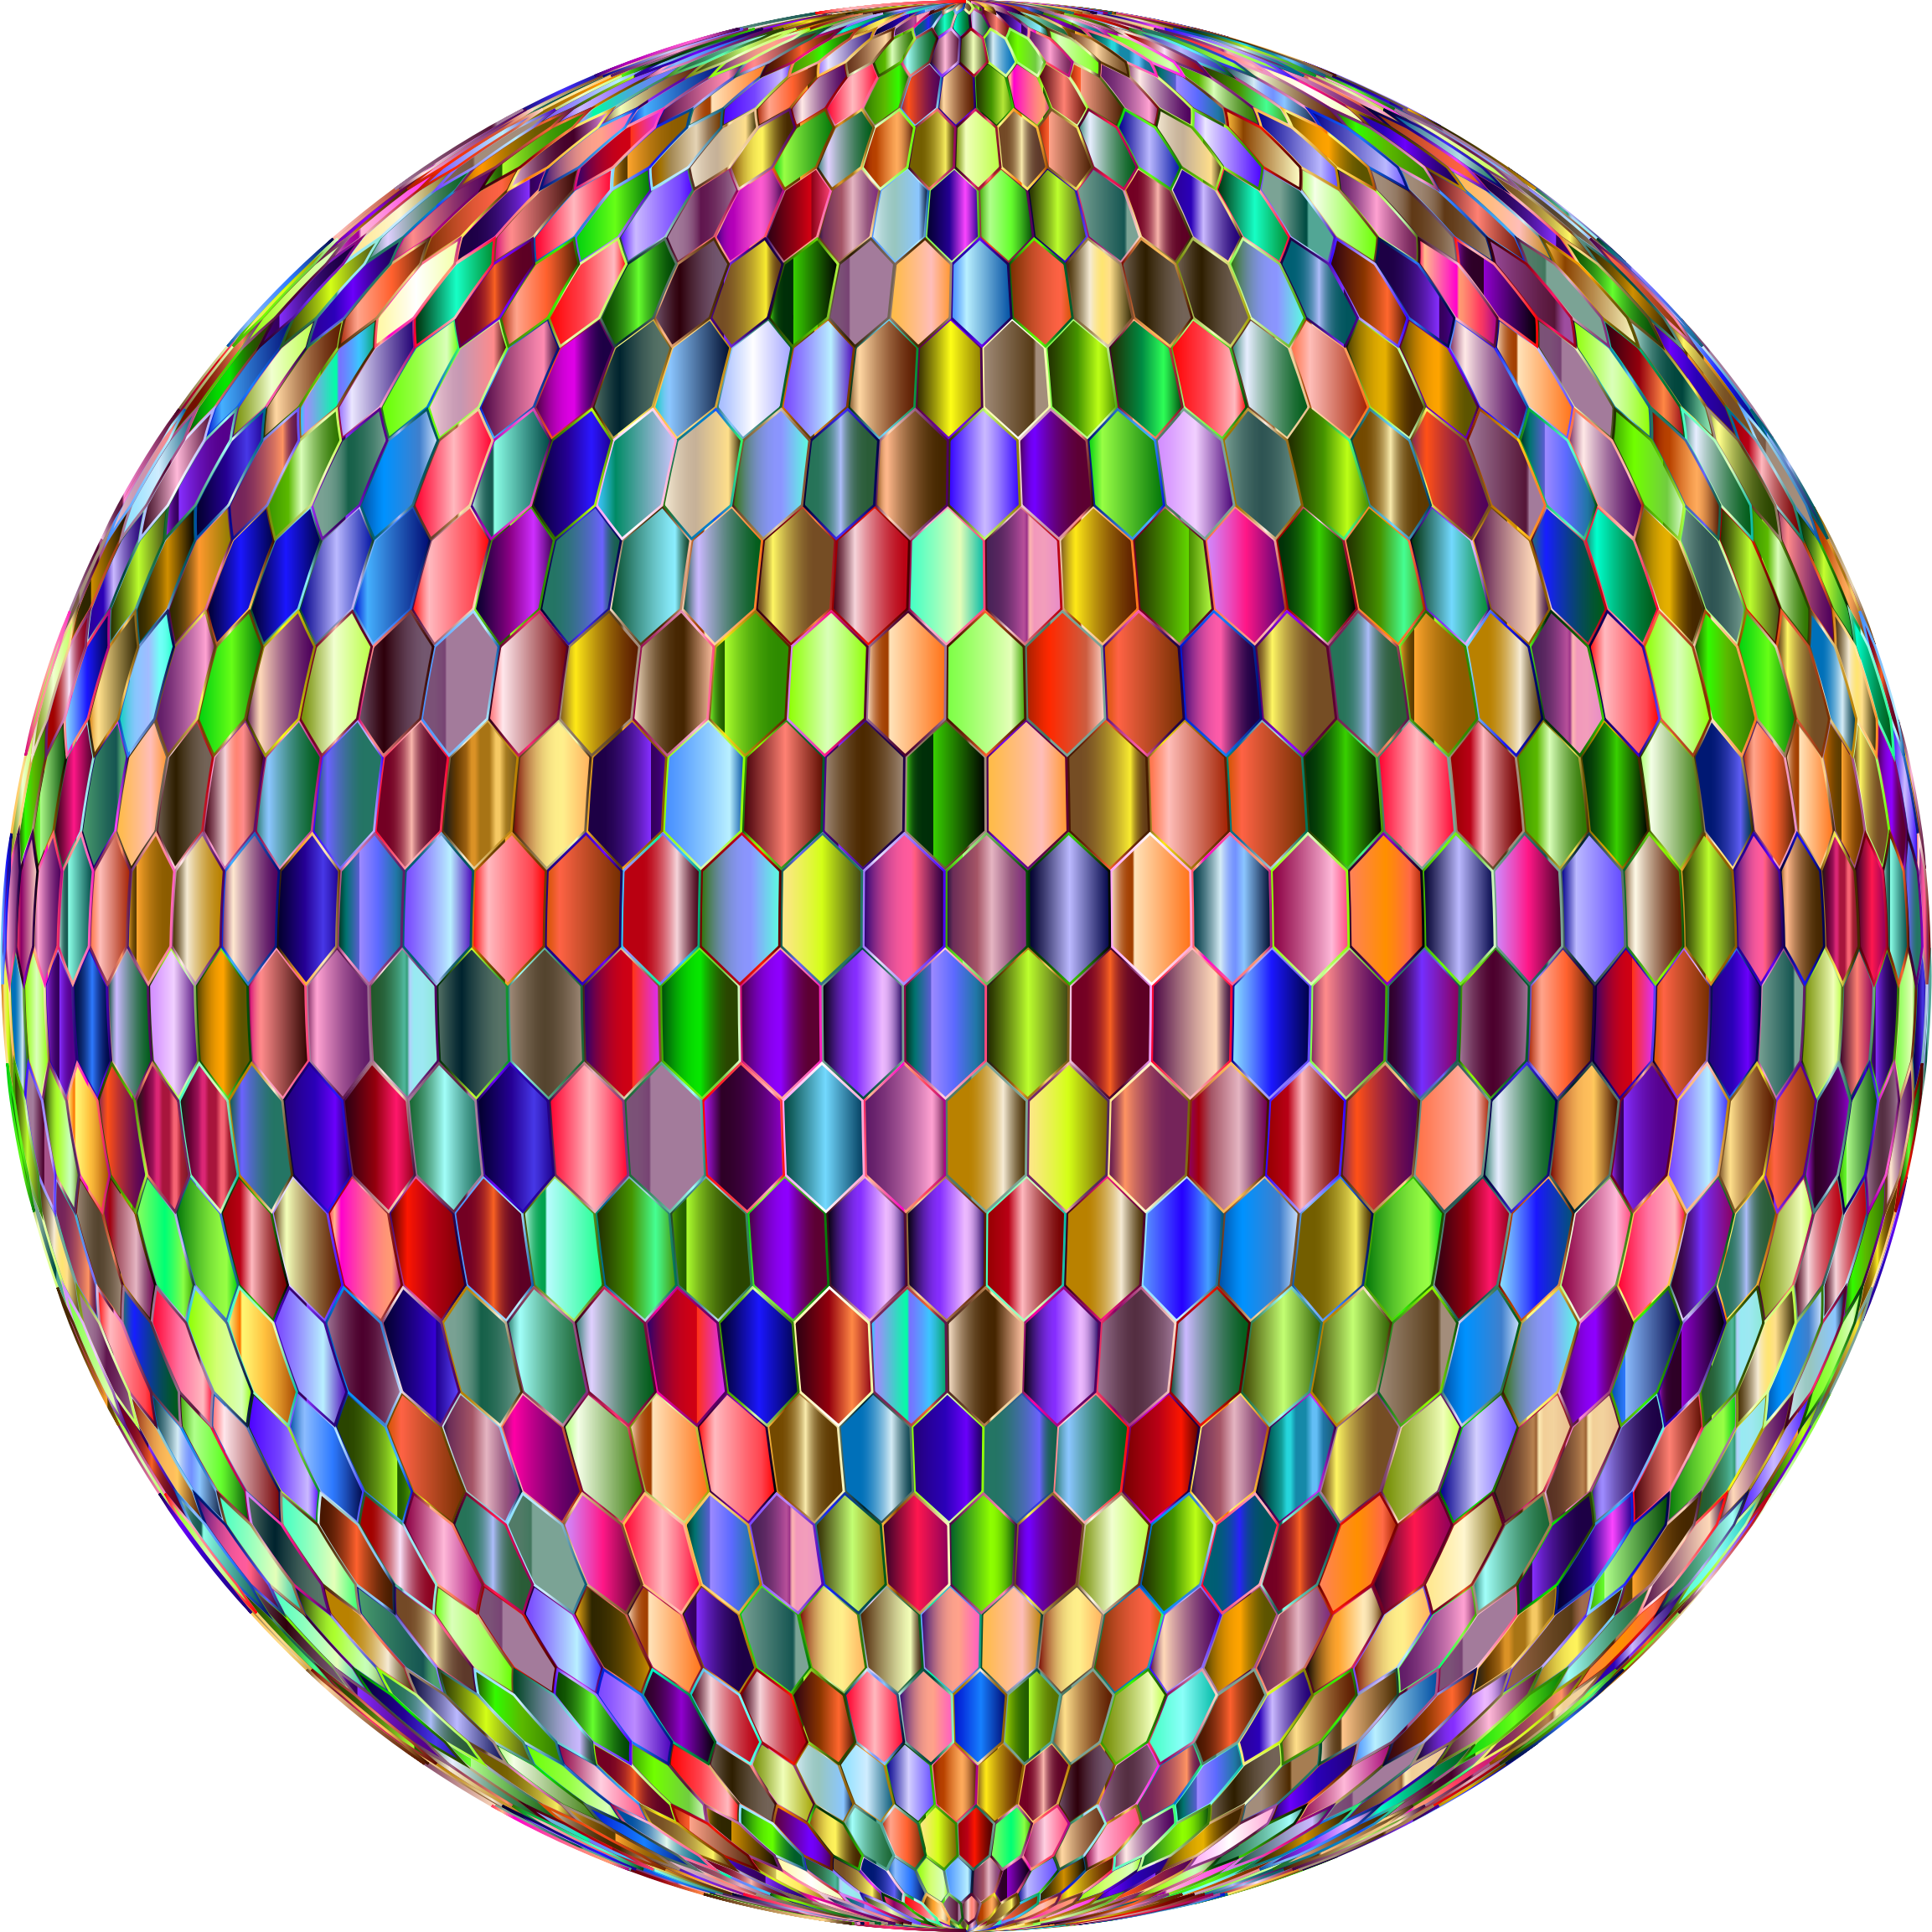 Prismatic Hexagonal Grid Sphere Variation 2 6 by GDJ